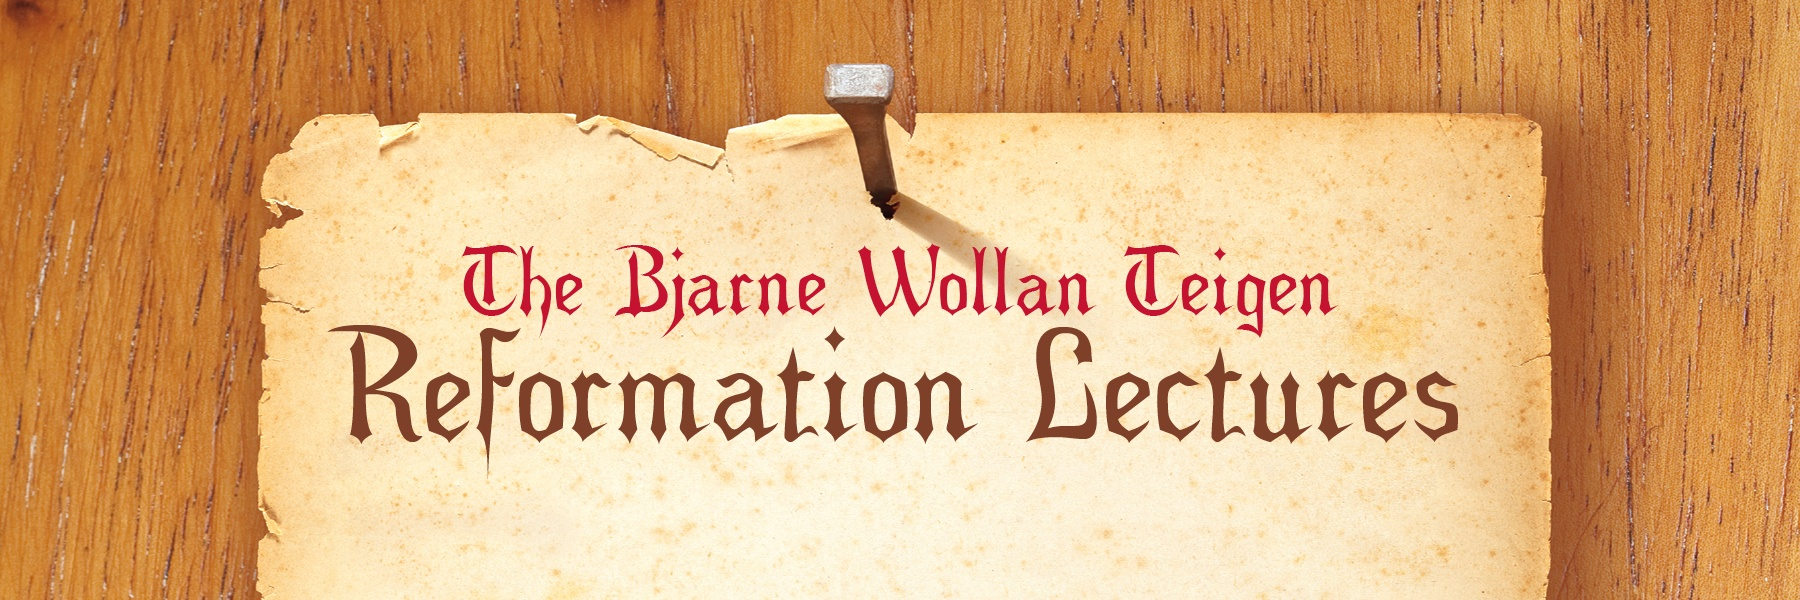 "Text ""The Bjarne Wollan Teigen Reformation Lectures"" on a parchment background."